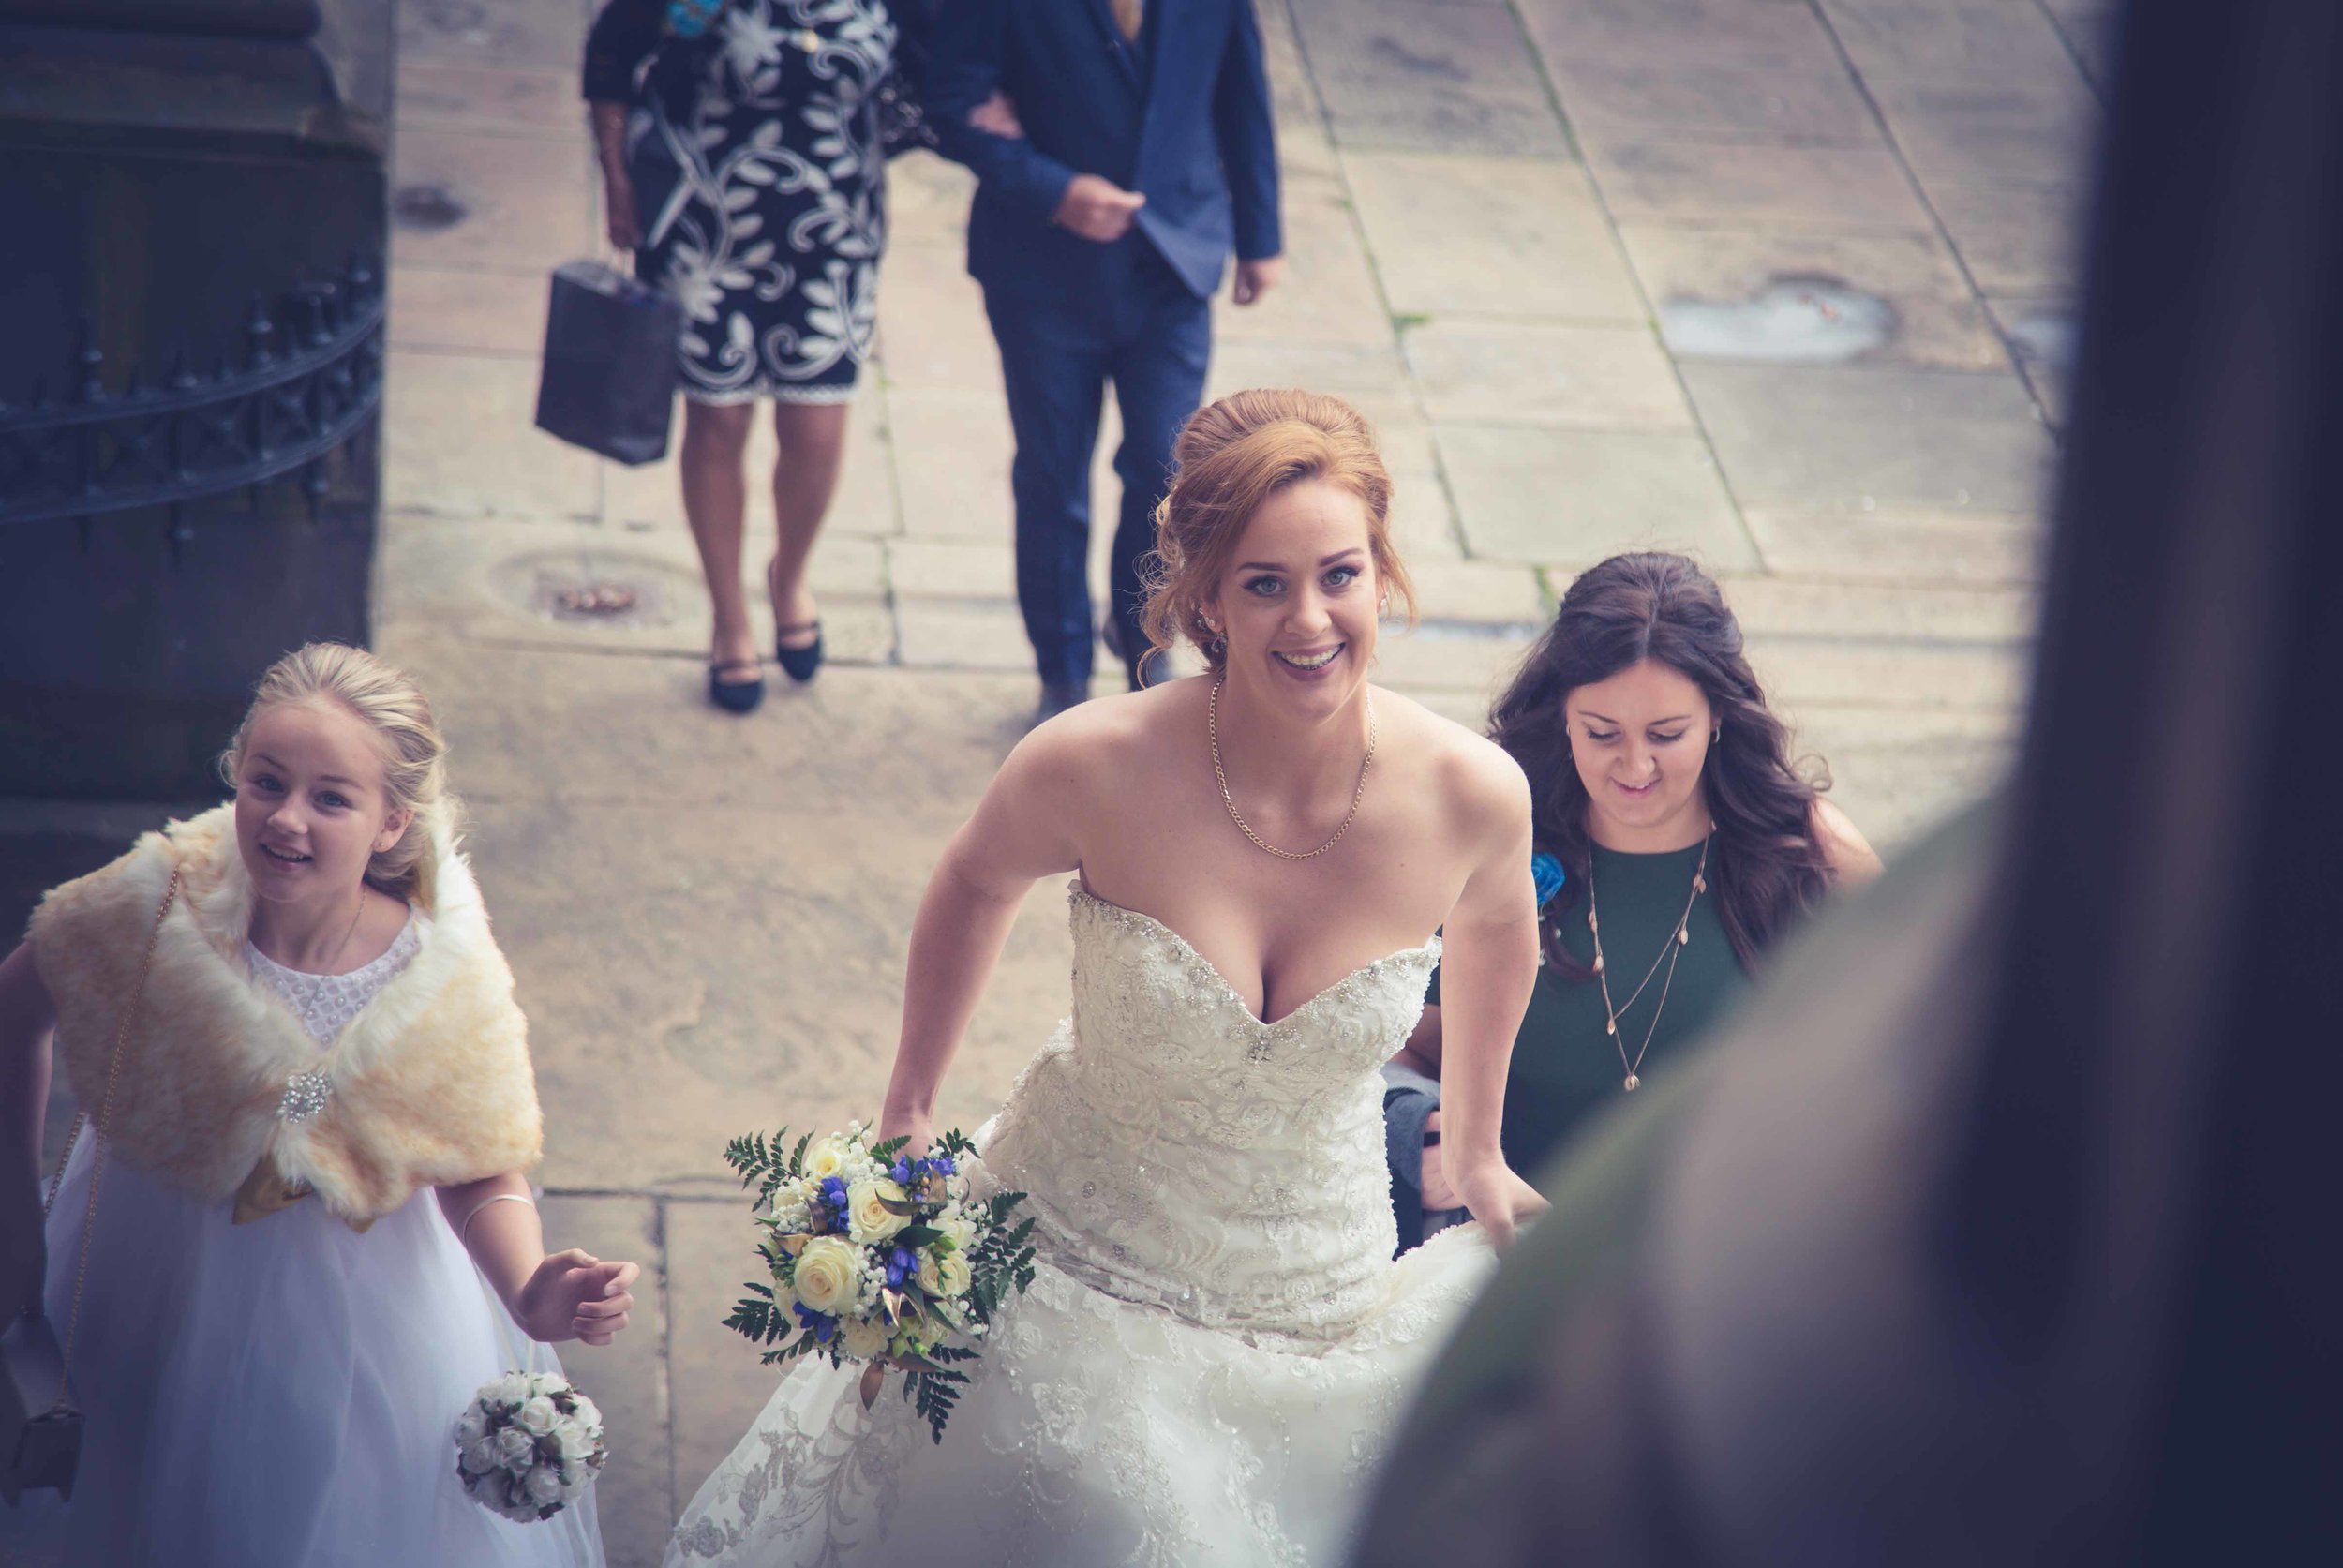 wedding-photos-at-st-georges-hall-liverpool (7 of 122).jpg